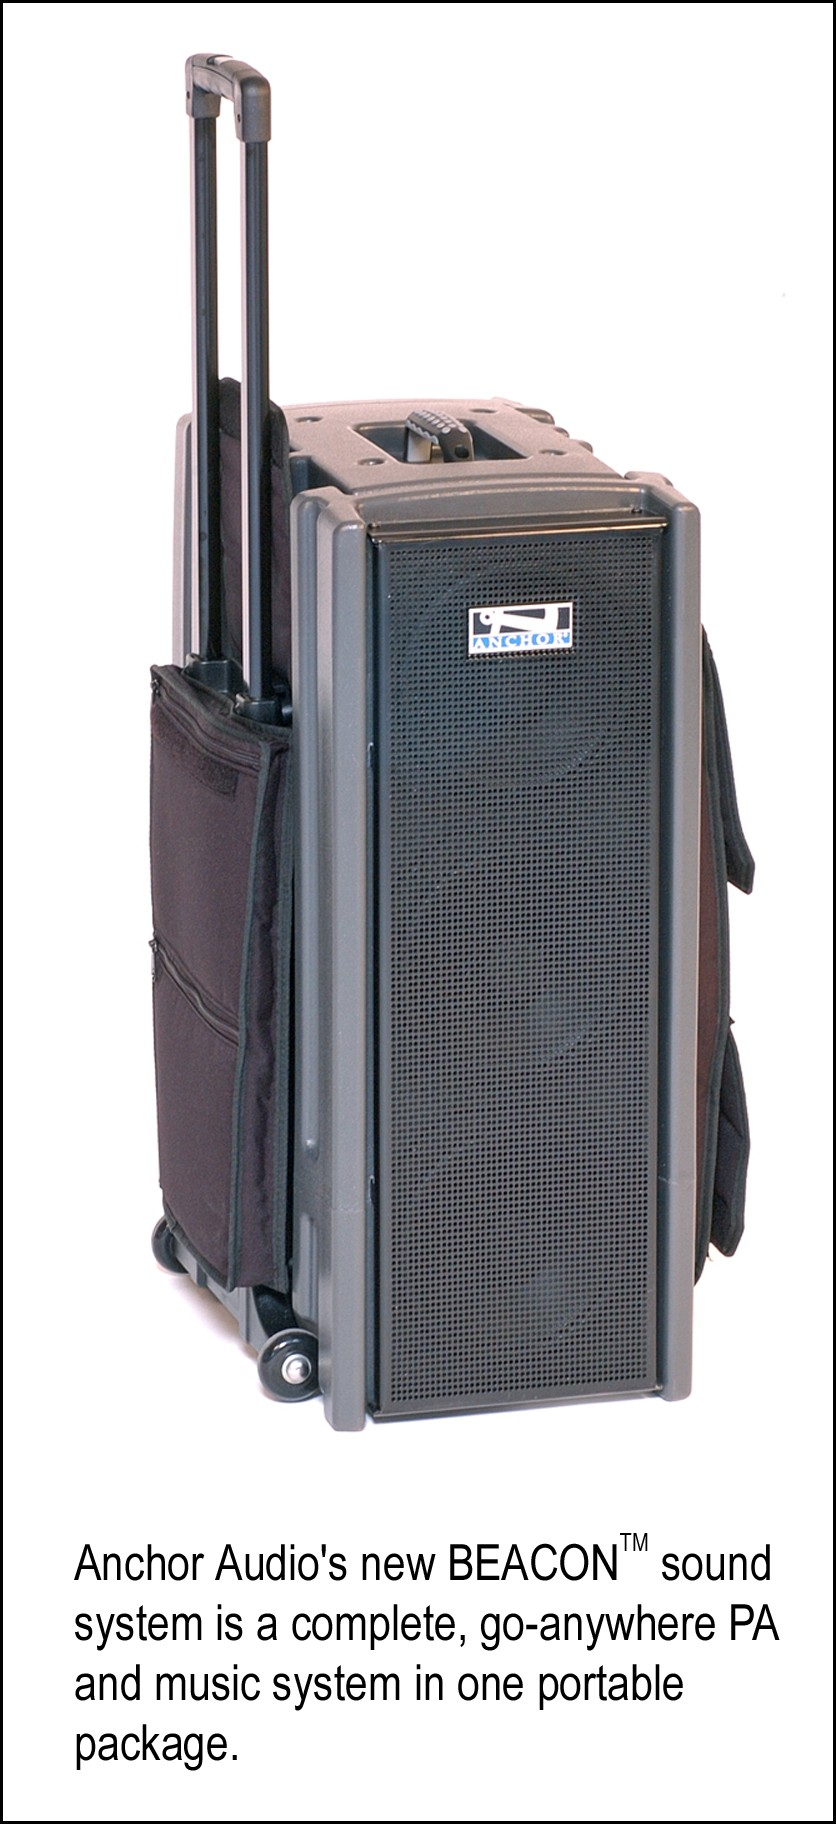 anchor audio 39 s new beacon tm portable pa system a complete public address and music system. Black Bedroom Furniture Sets. Home Design Ideas